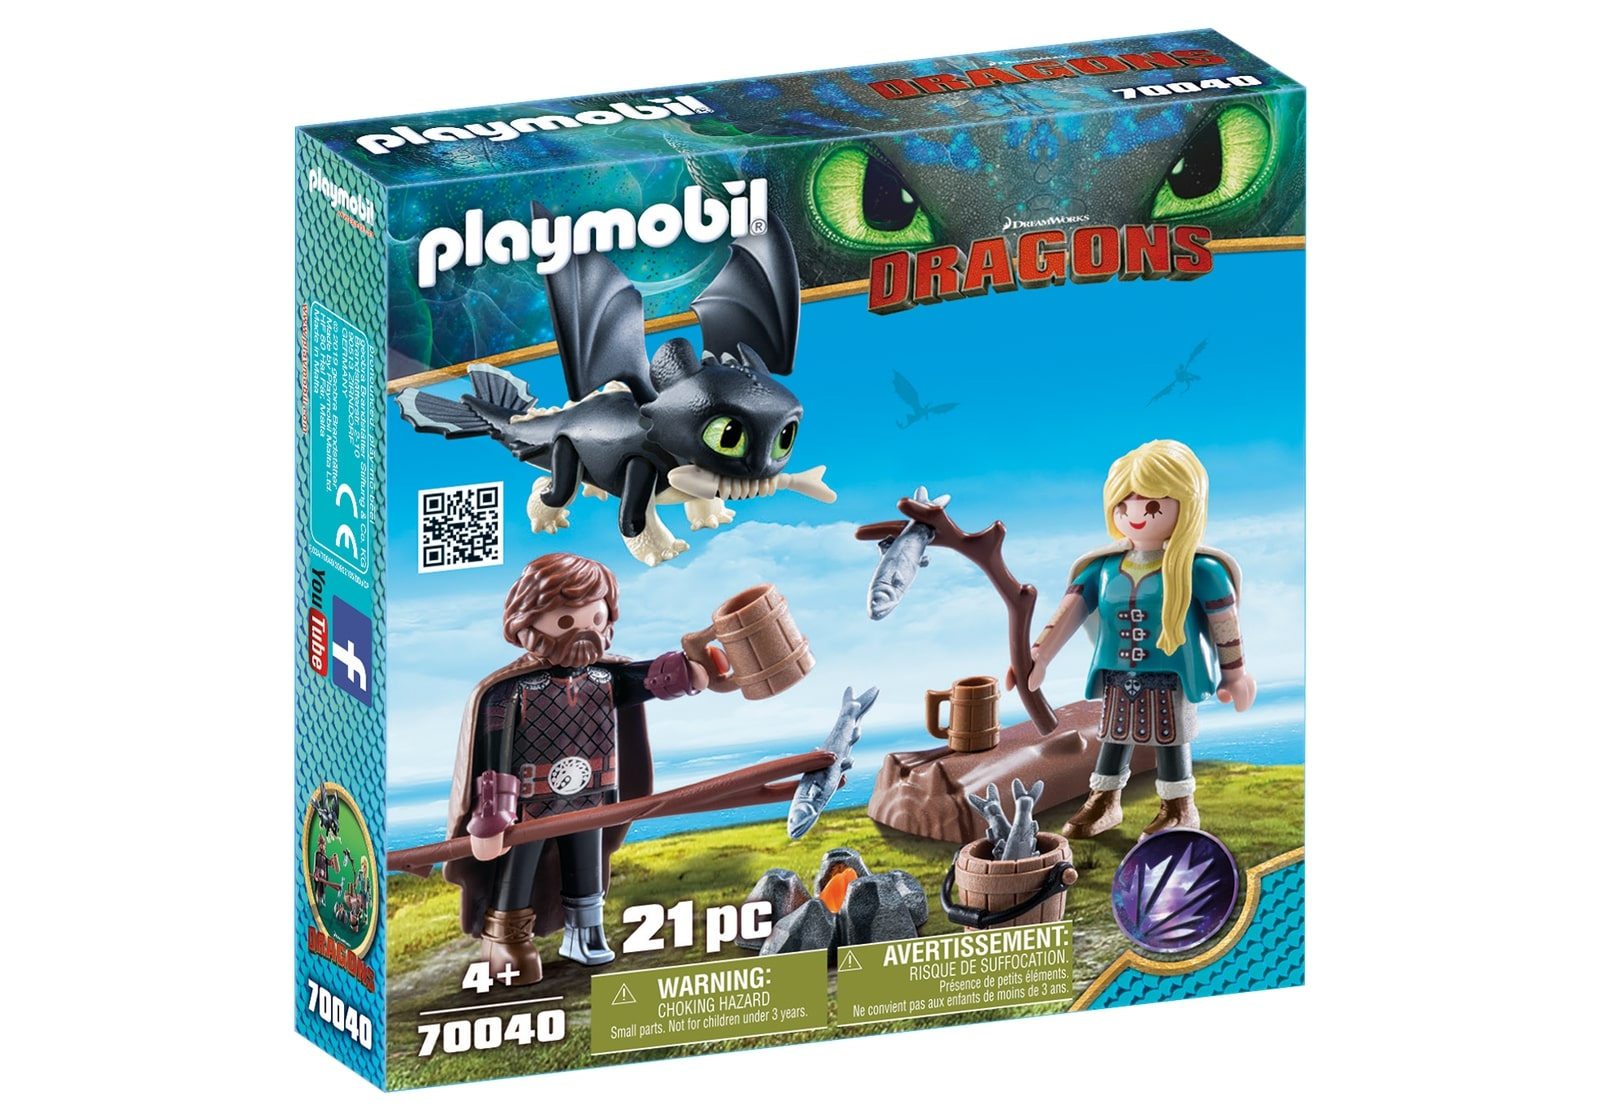 Hiccup, astrid si pui de dragon playmobil dragons